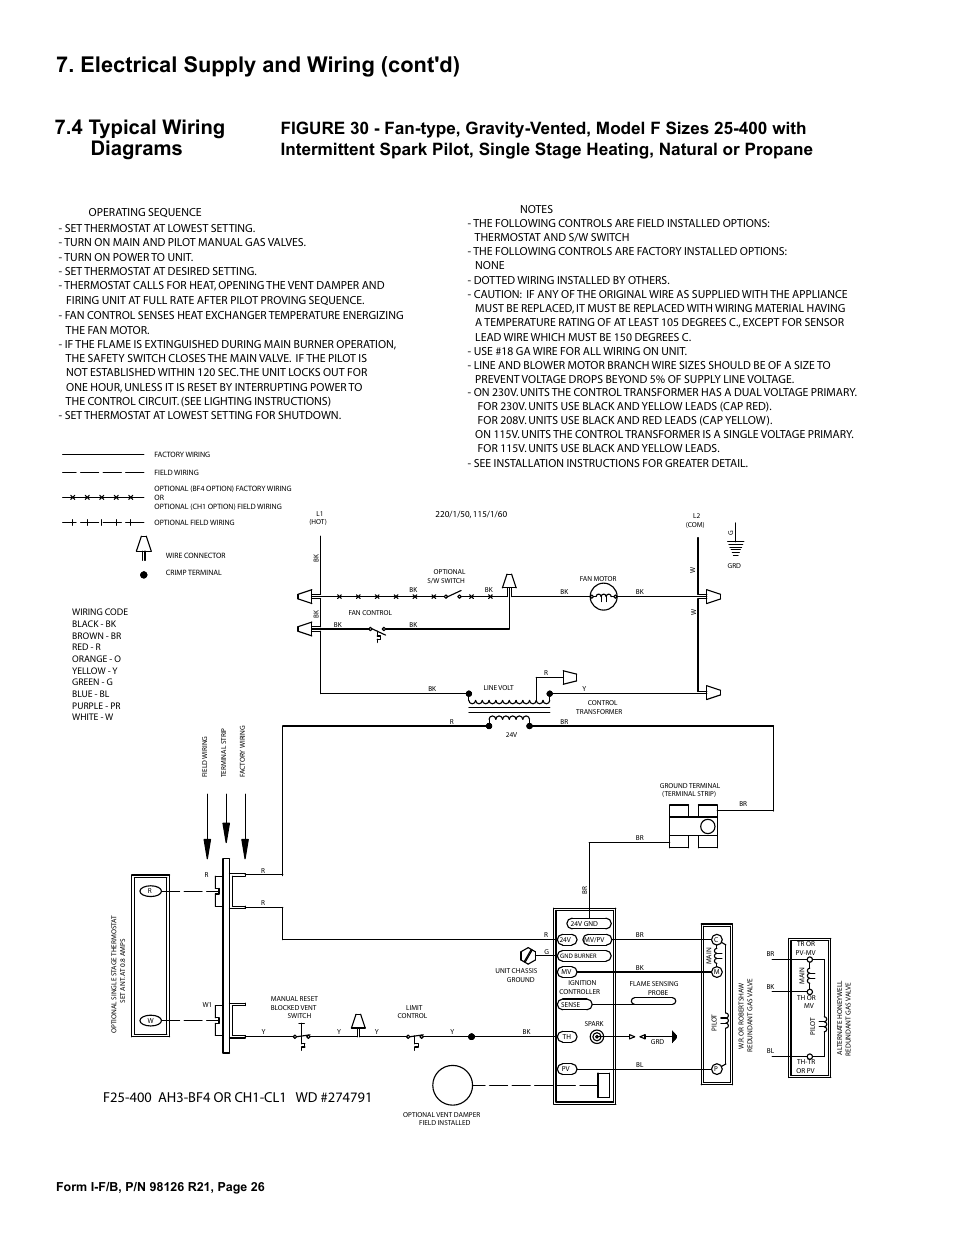 reznor b unit installation manual page26 reznor wiring diagram fantech wiring diagrams \u2022 wiring diagrams fantech wiring diagrams at reclaimingppi.co